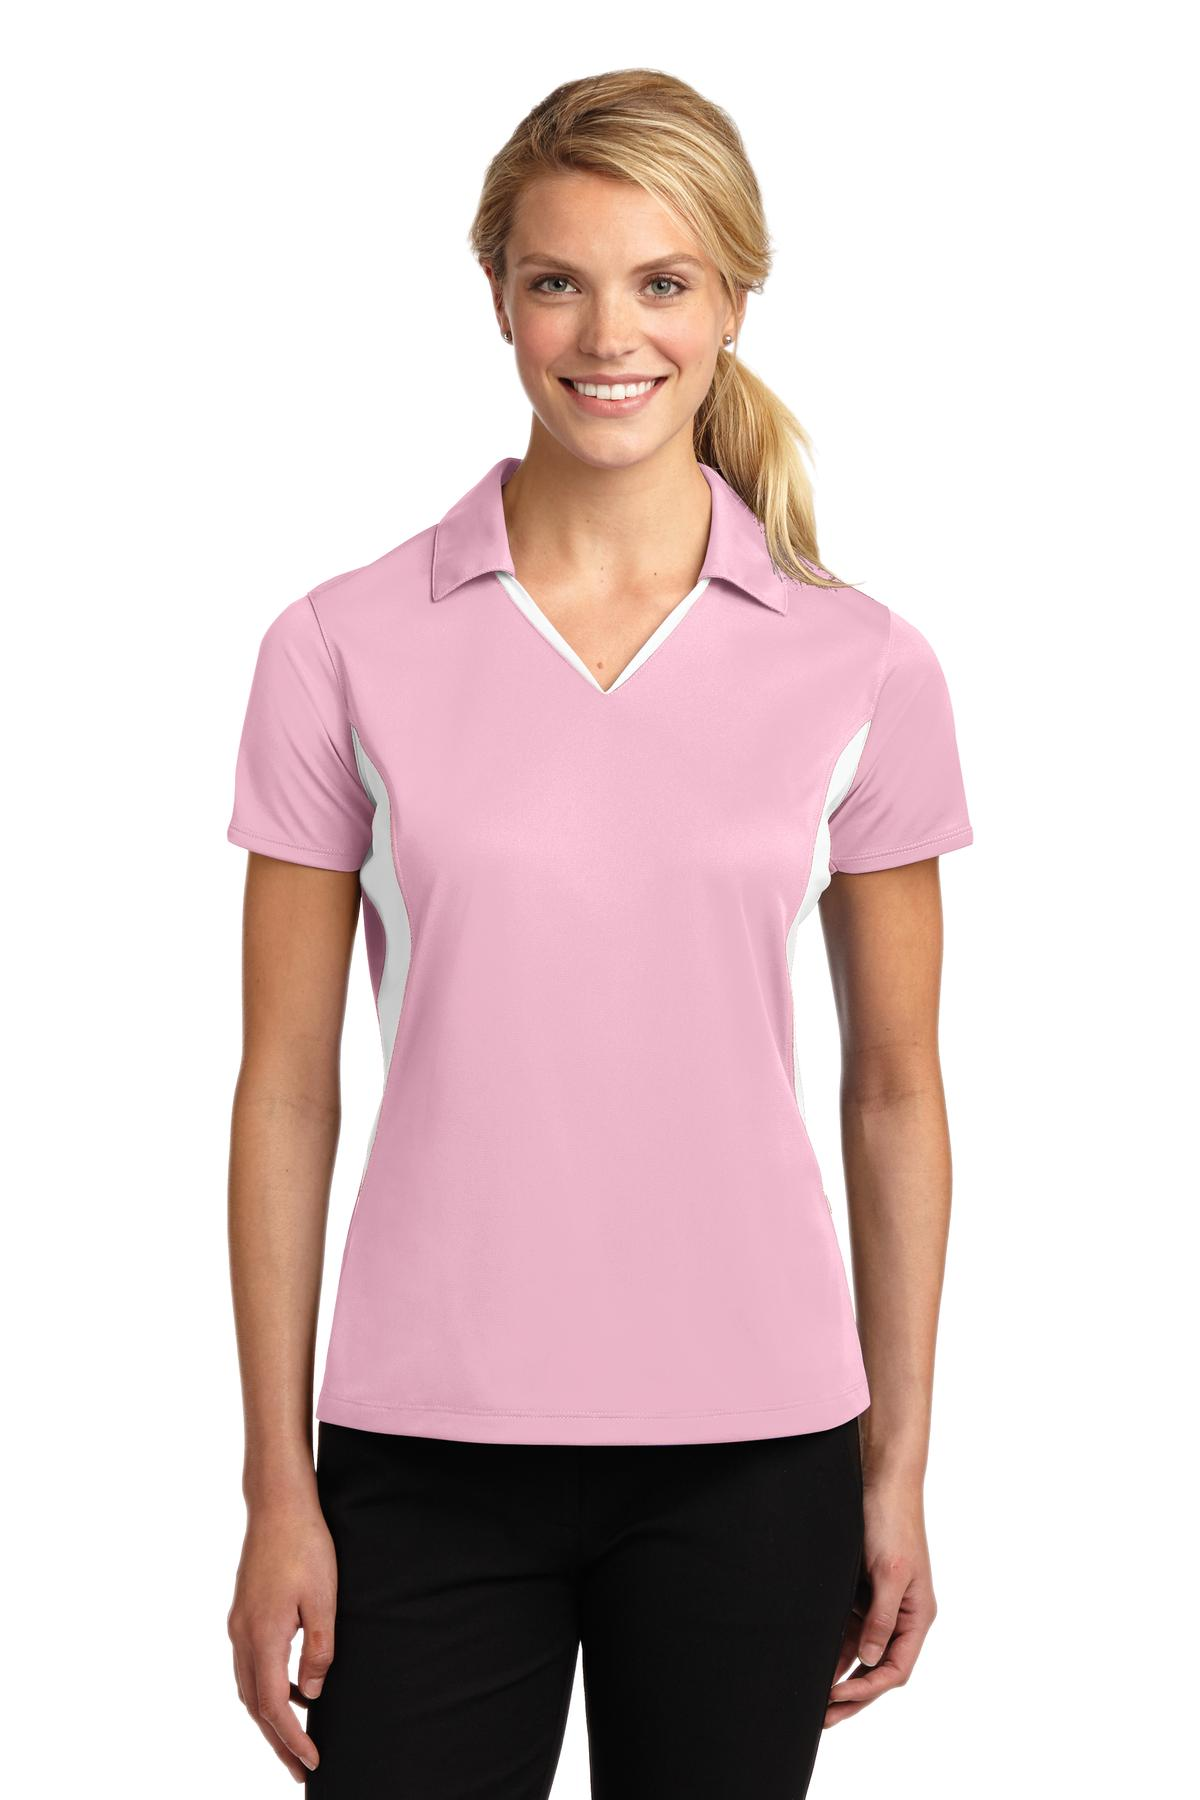 Sport-Tek ®  Ladies Side Blocked Micropique Sport-Wick ®  Polo. LST655 - Light Pink/White